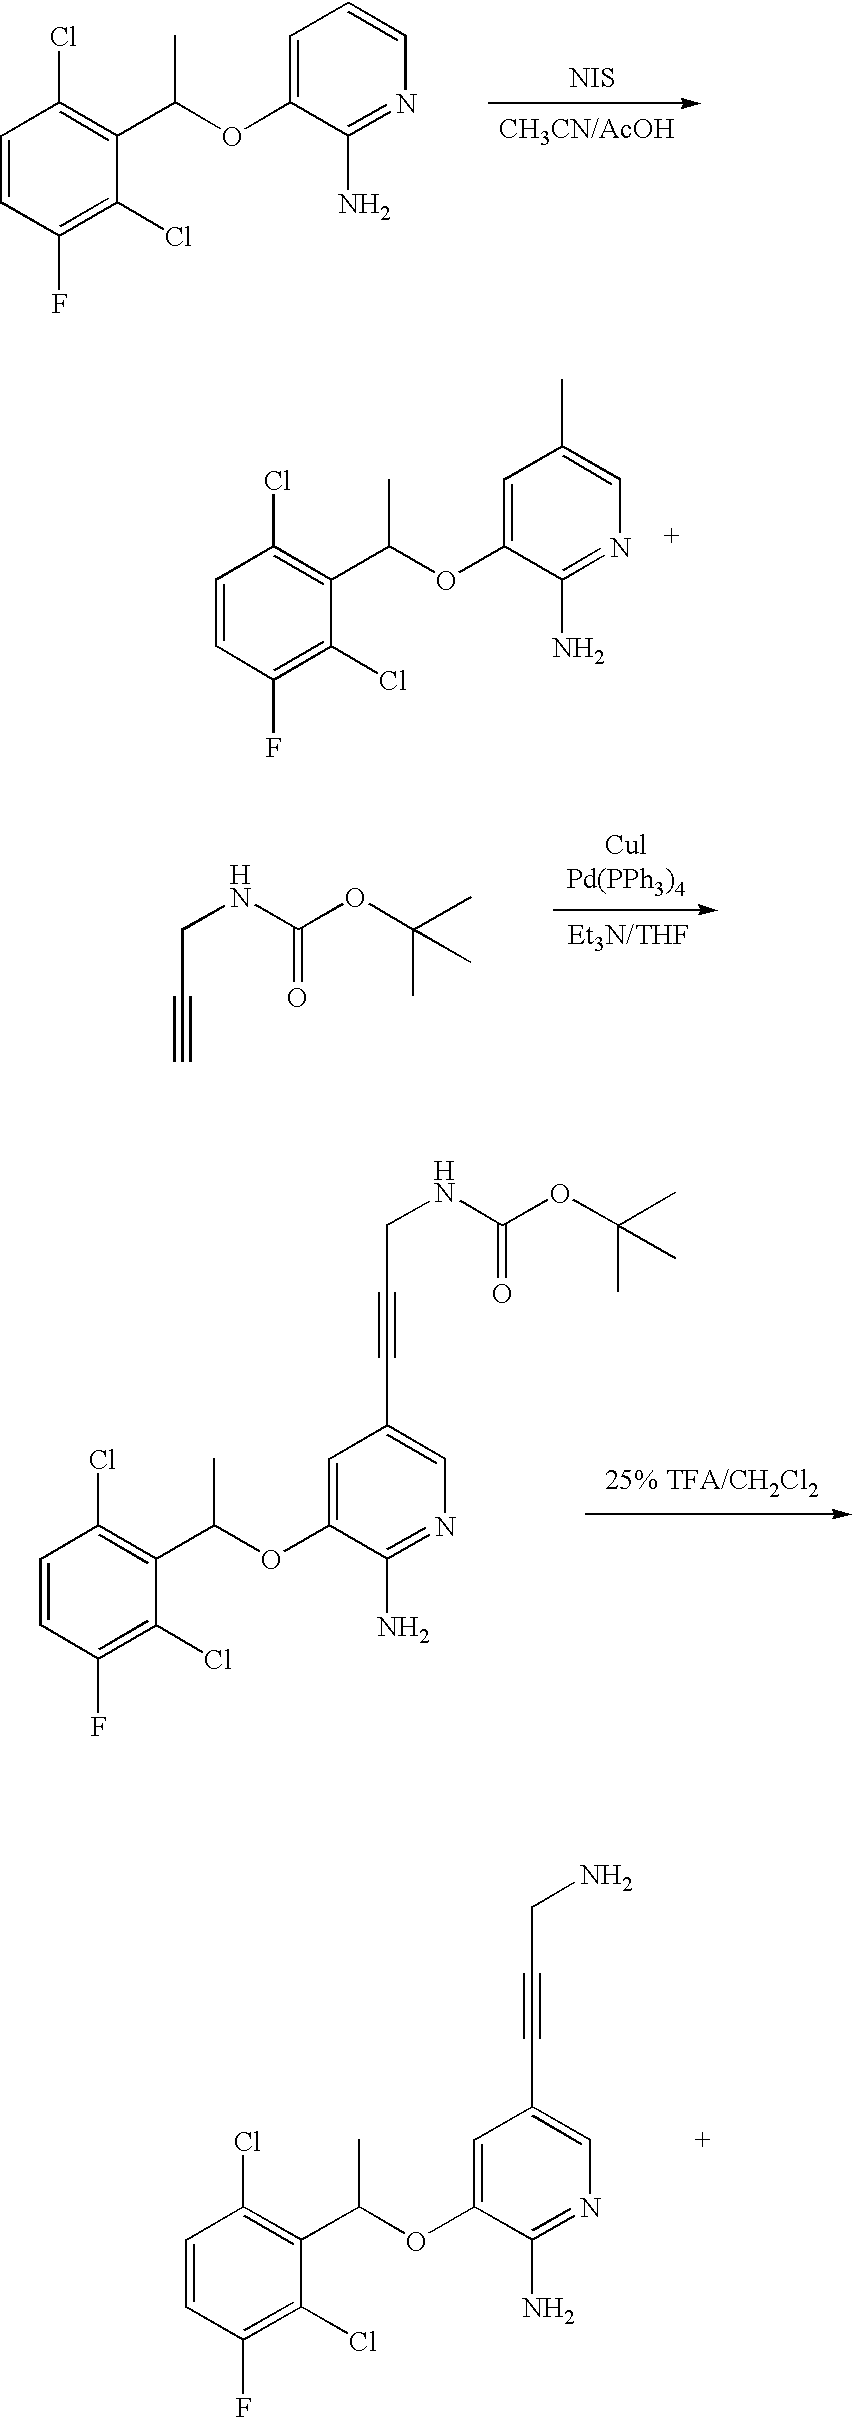 Us20050009840a1 Aminoheteroaryl Compounds As Protein Kinase Simple Ic 555 Automatic Bedroom Night Lamp Circuit Diagram Image Figure 20050113 C00027